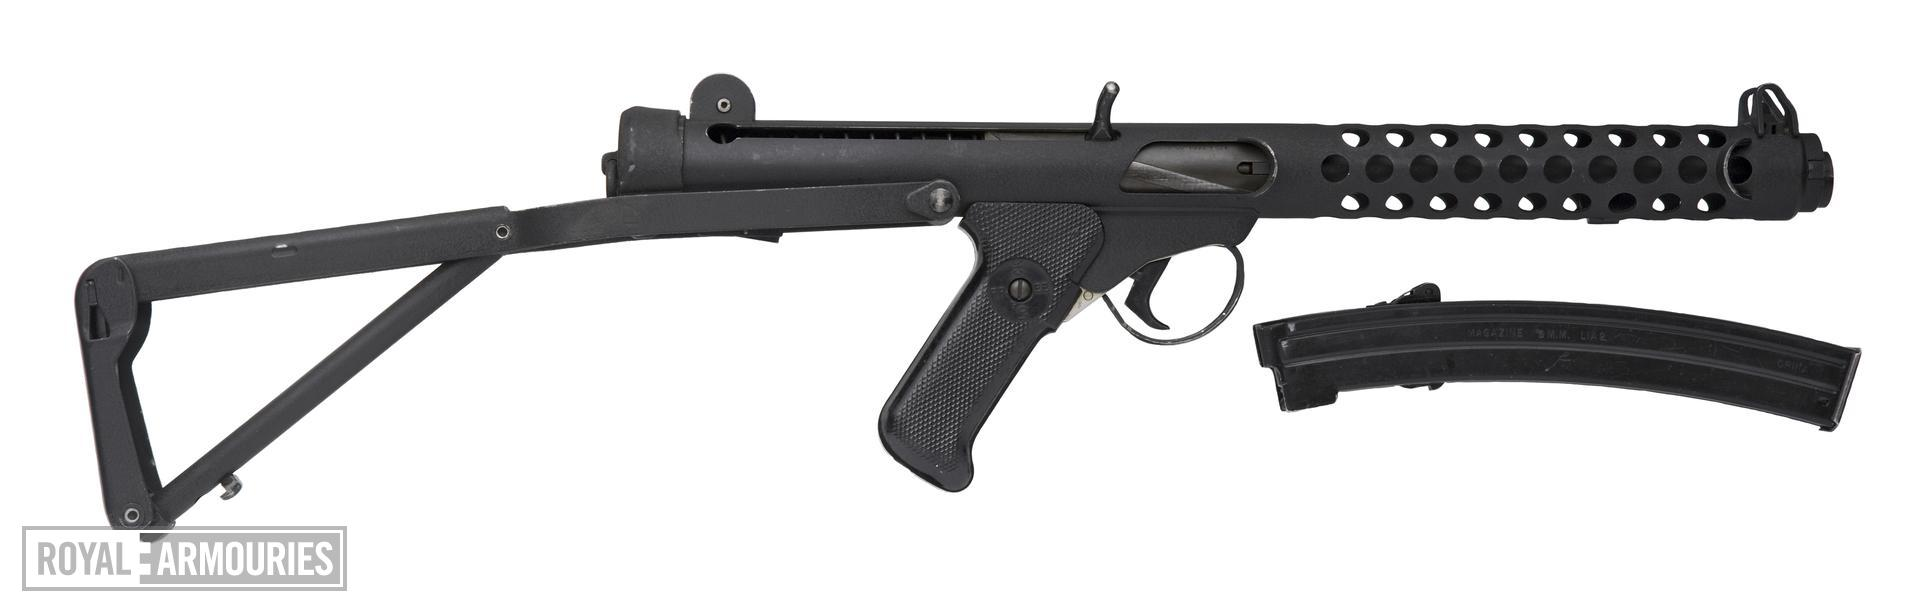 Centrefire automatic submachine gun - Sterling Mk.4 (L2A3) commercial model